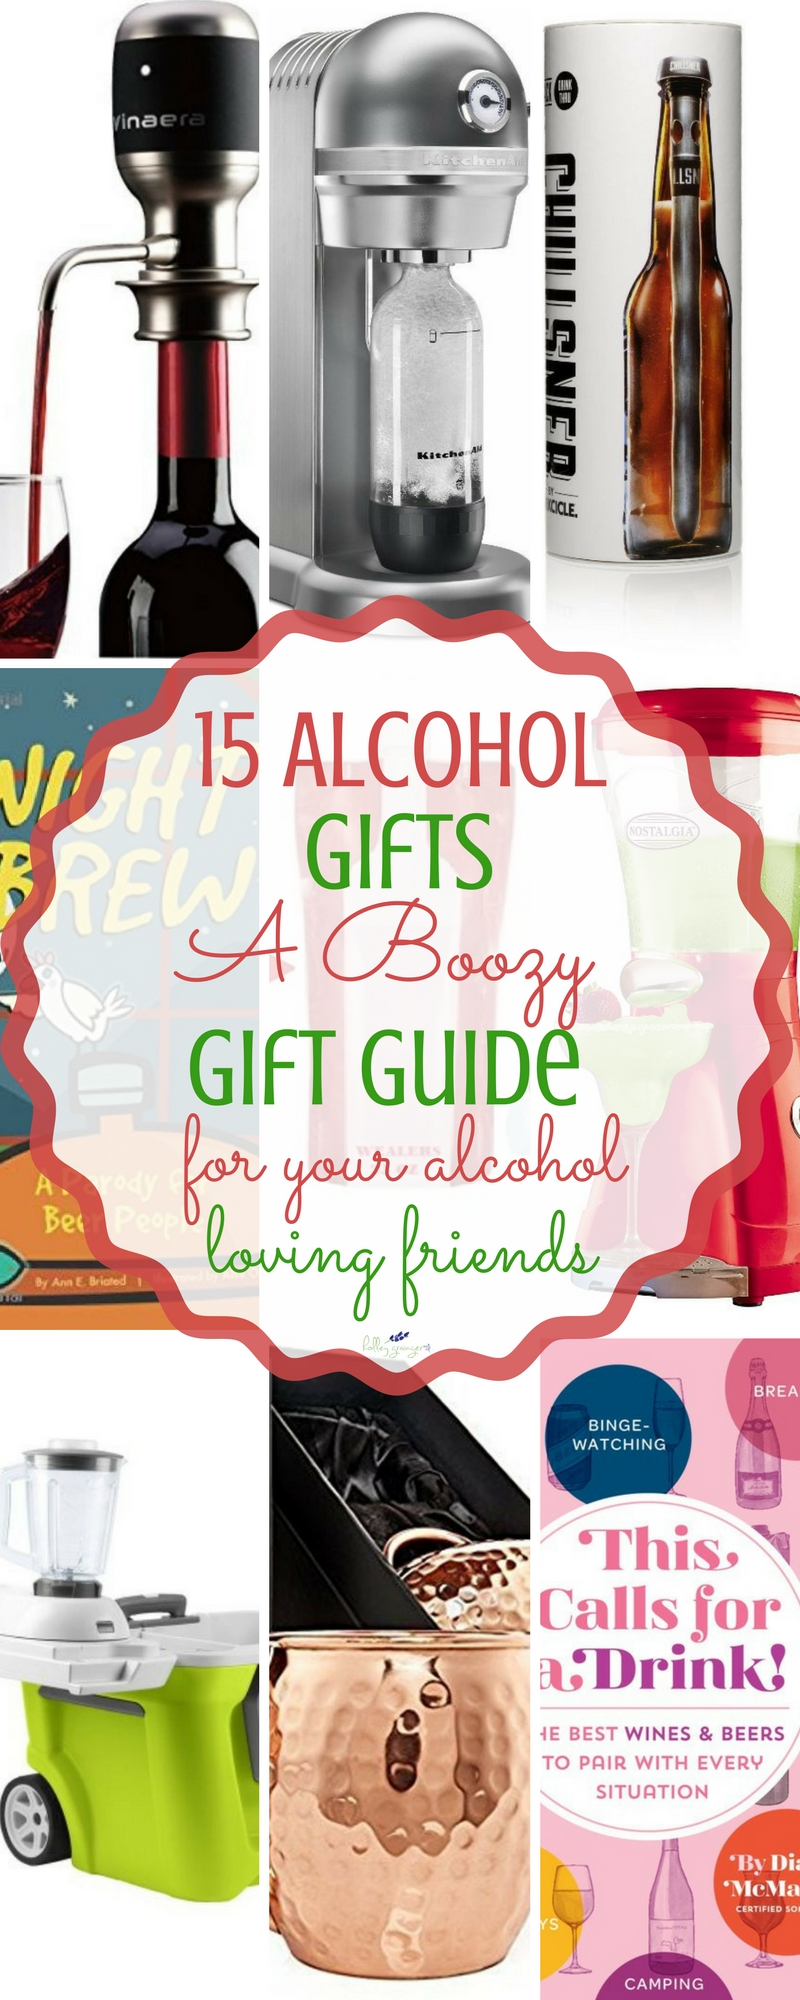 15 Alcohol Gifts For Your Friends That Drink